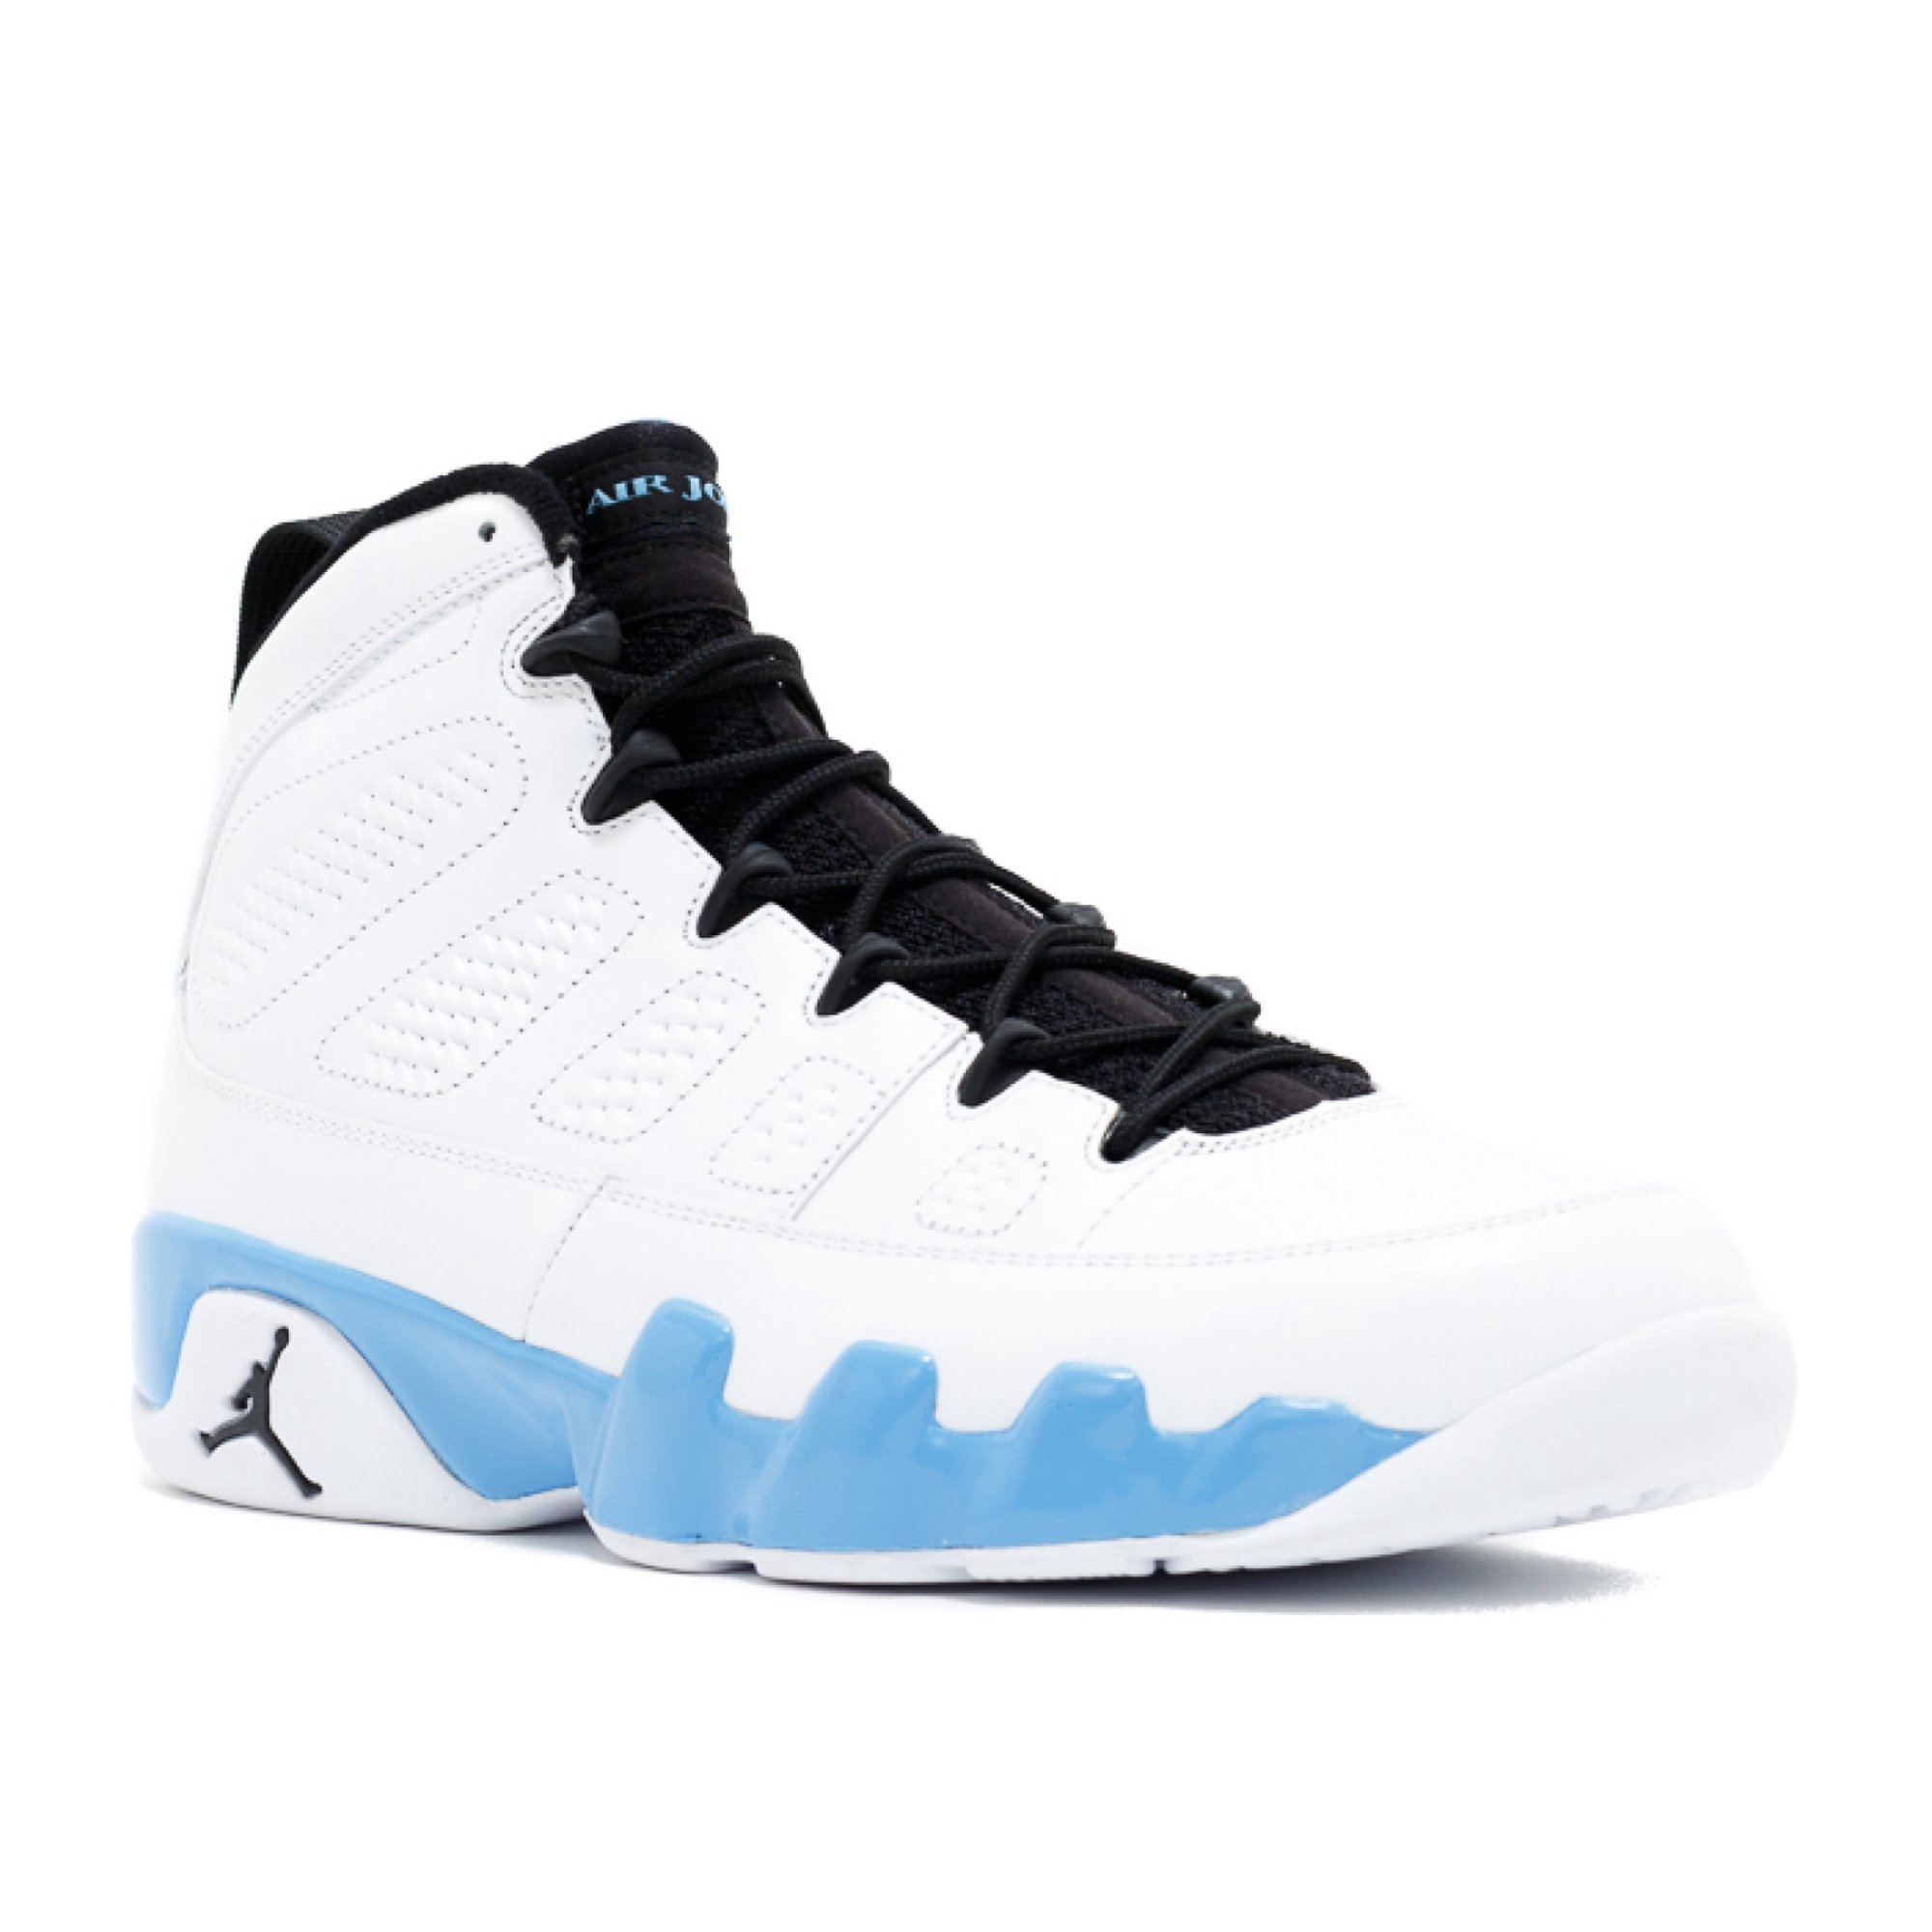 new product ccfc7 926ff Air Jordan - Men - Air Jordan 9 Retro  2010 Release  - 302370-103 - Size 10    Walmart Canada